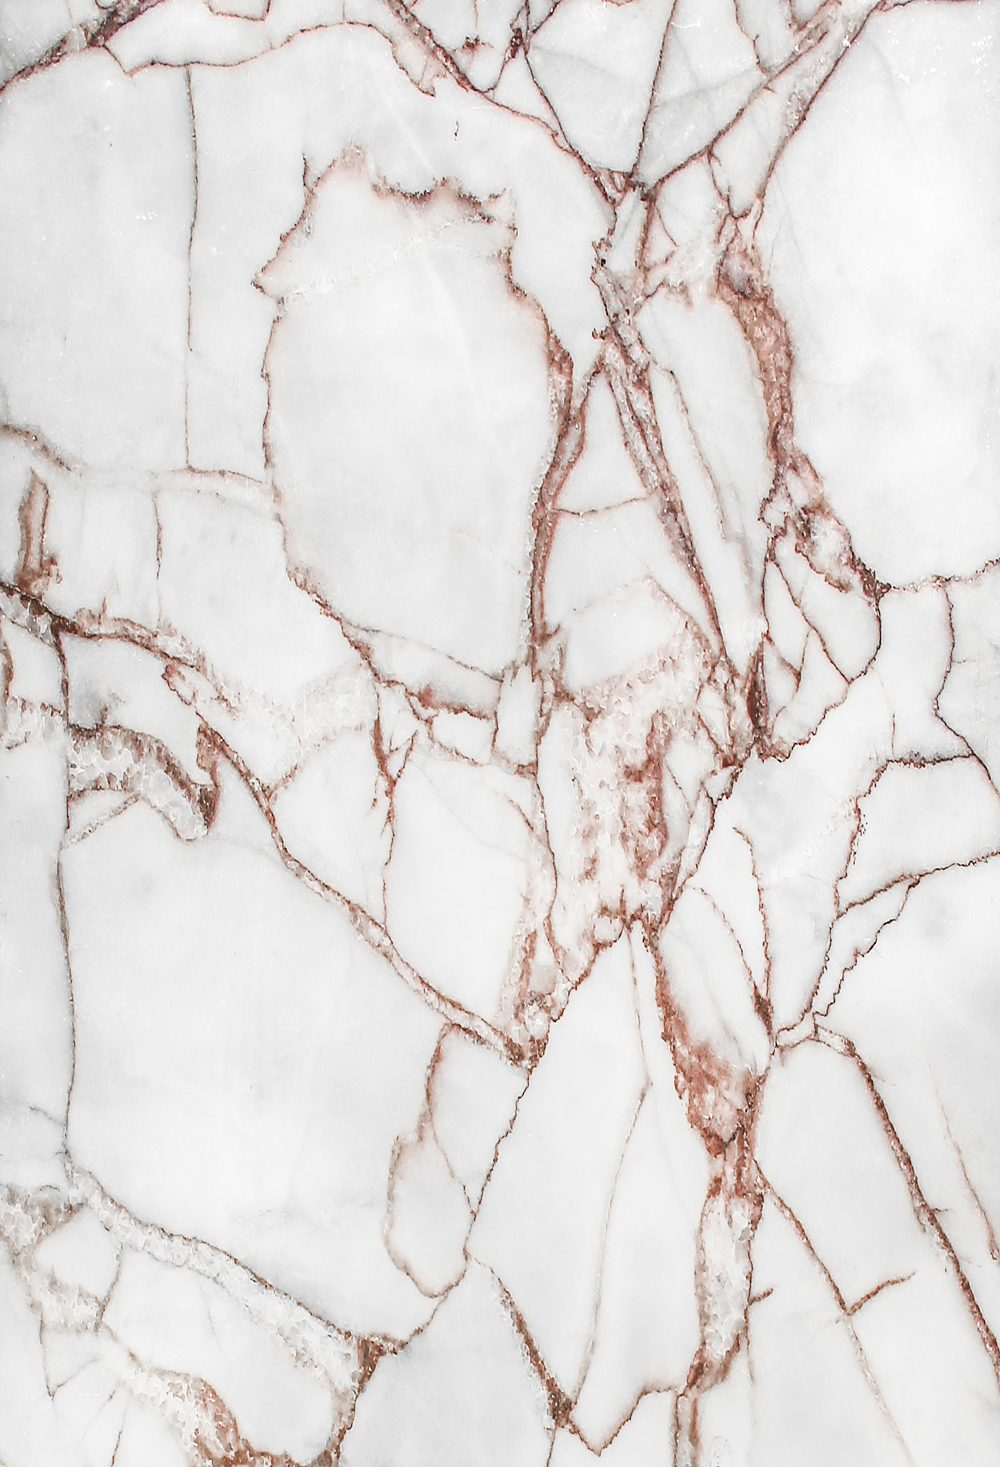 Marble White And Rust Colored Texture Backdrop For